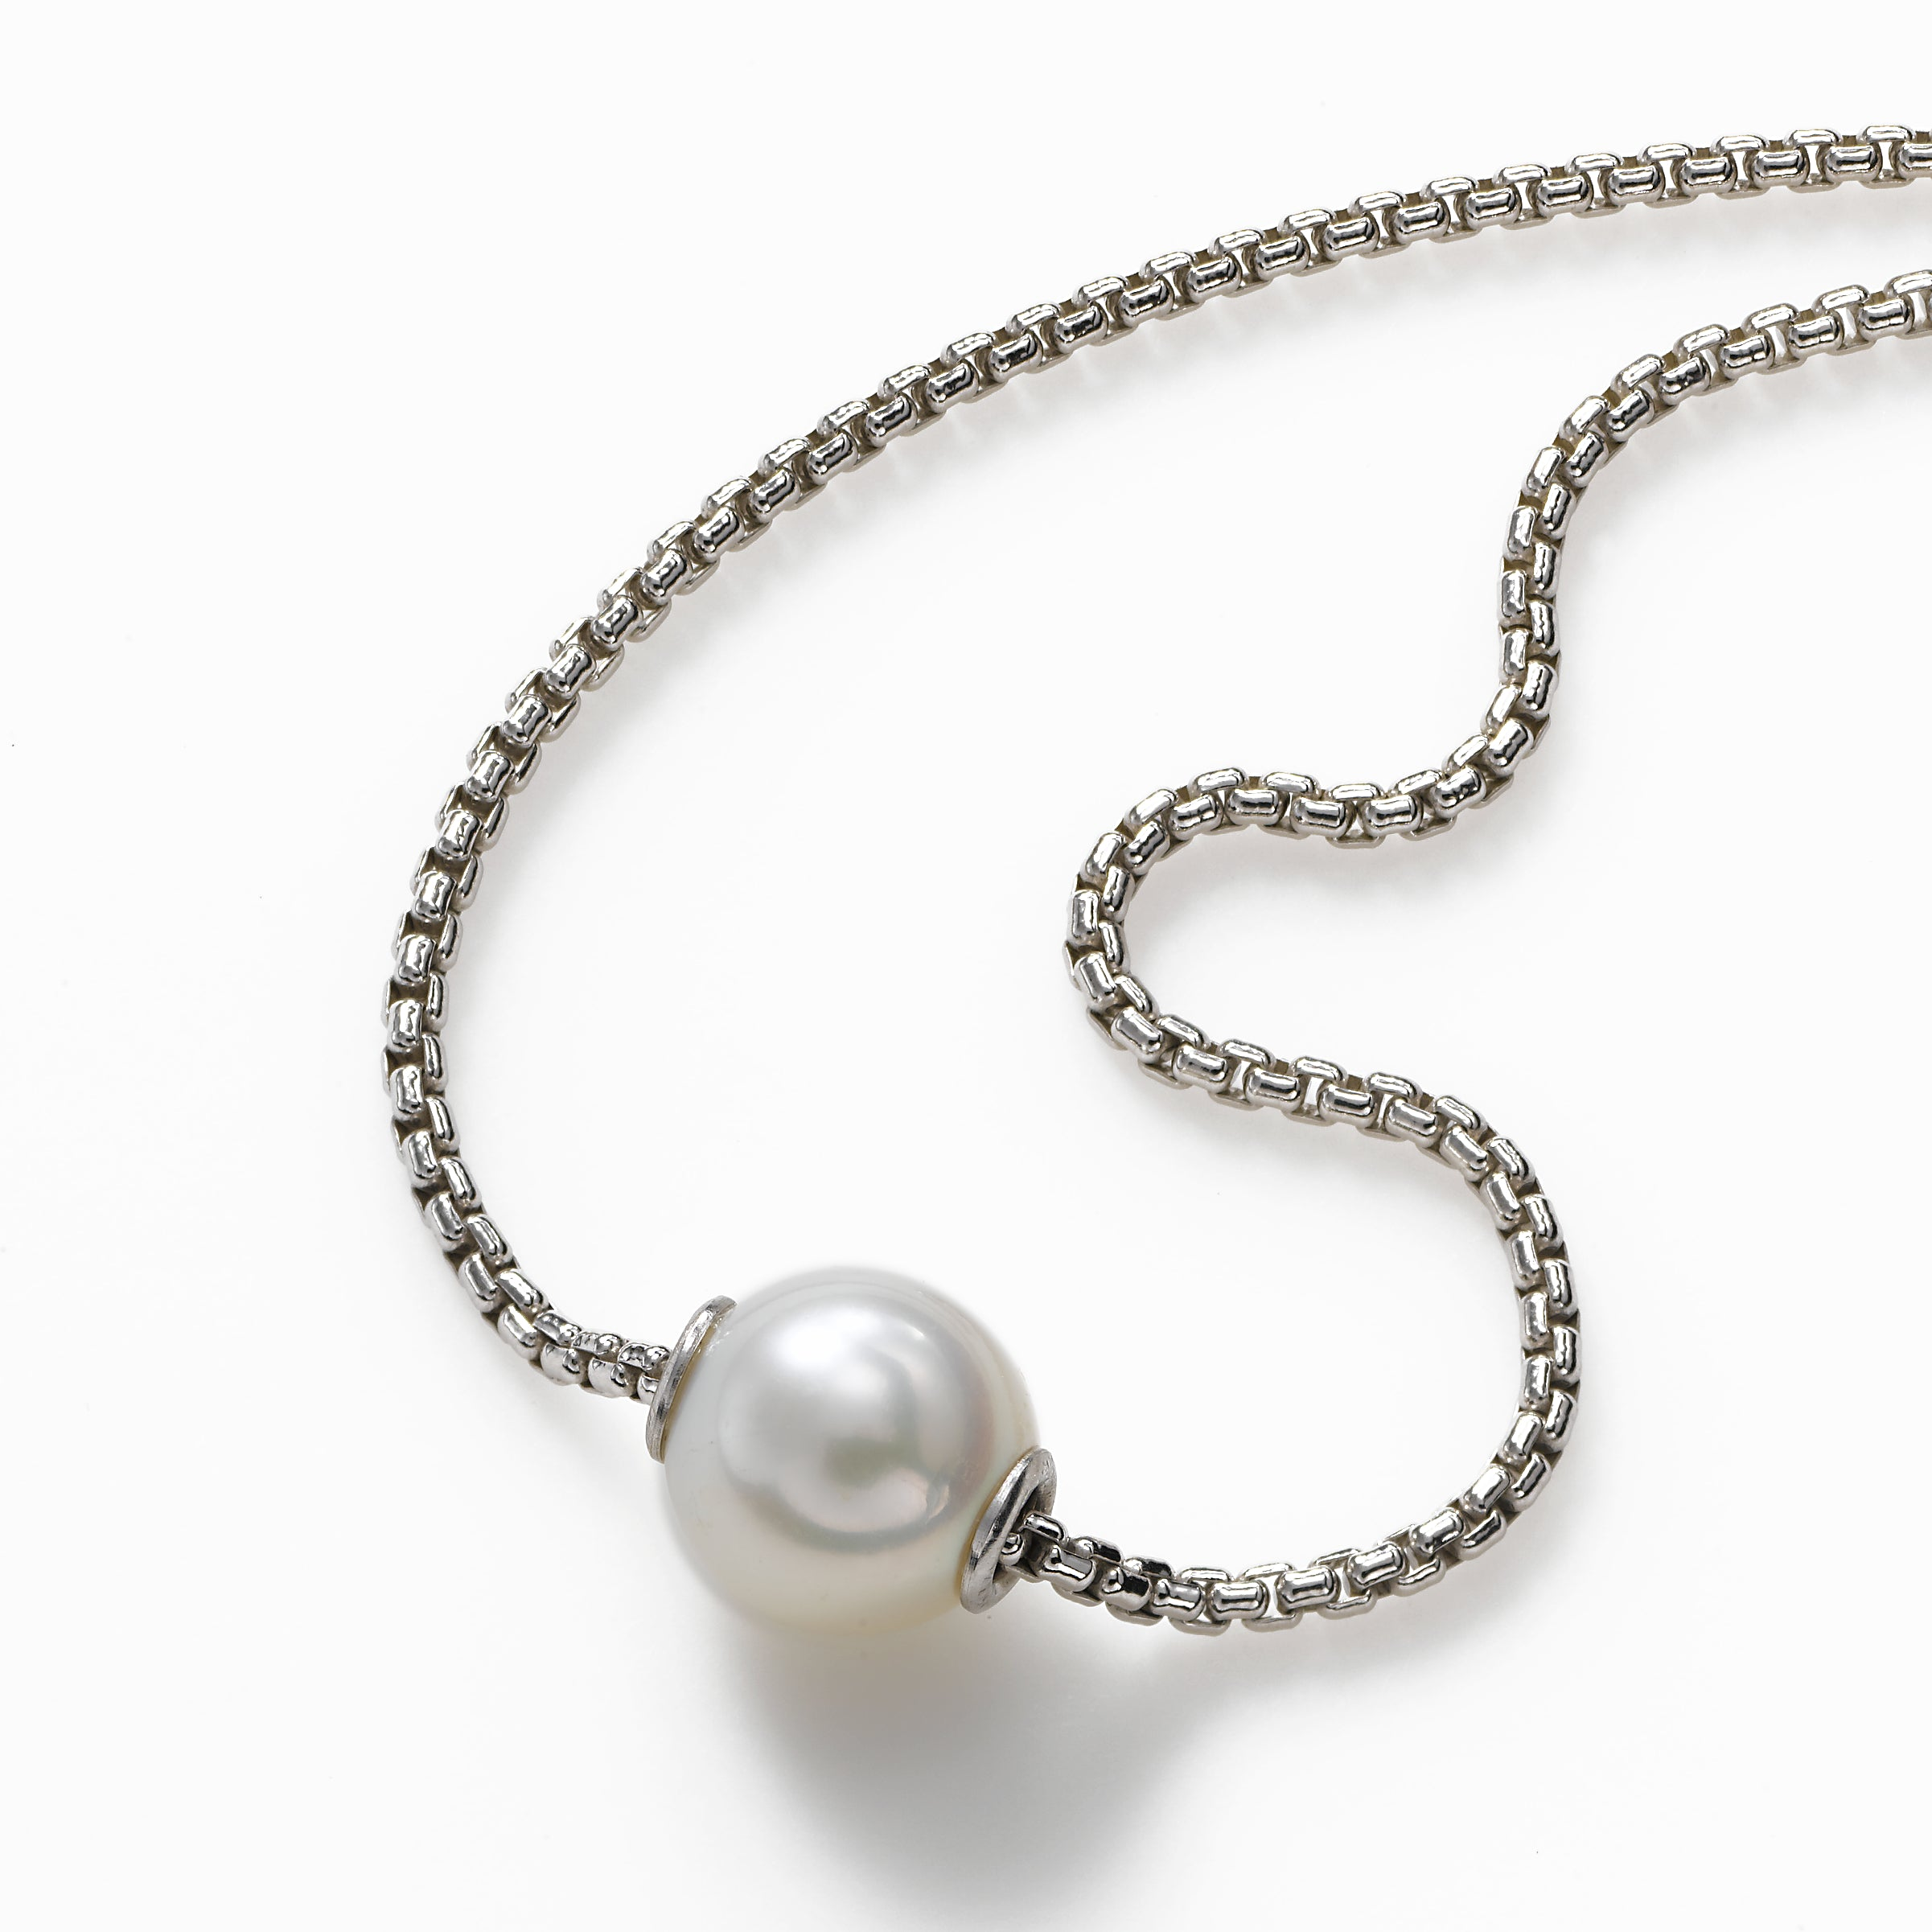 Single Freshwater 9.5MM Pearl, Moves on Chain, 18 Inch, Sterling Silver